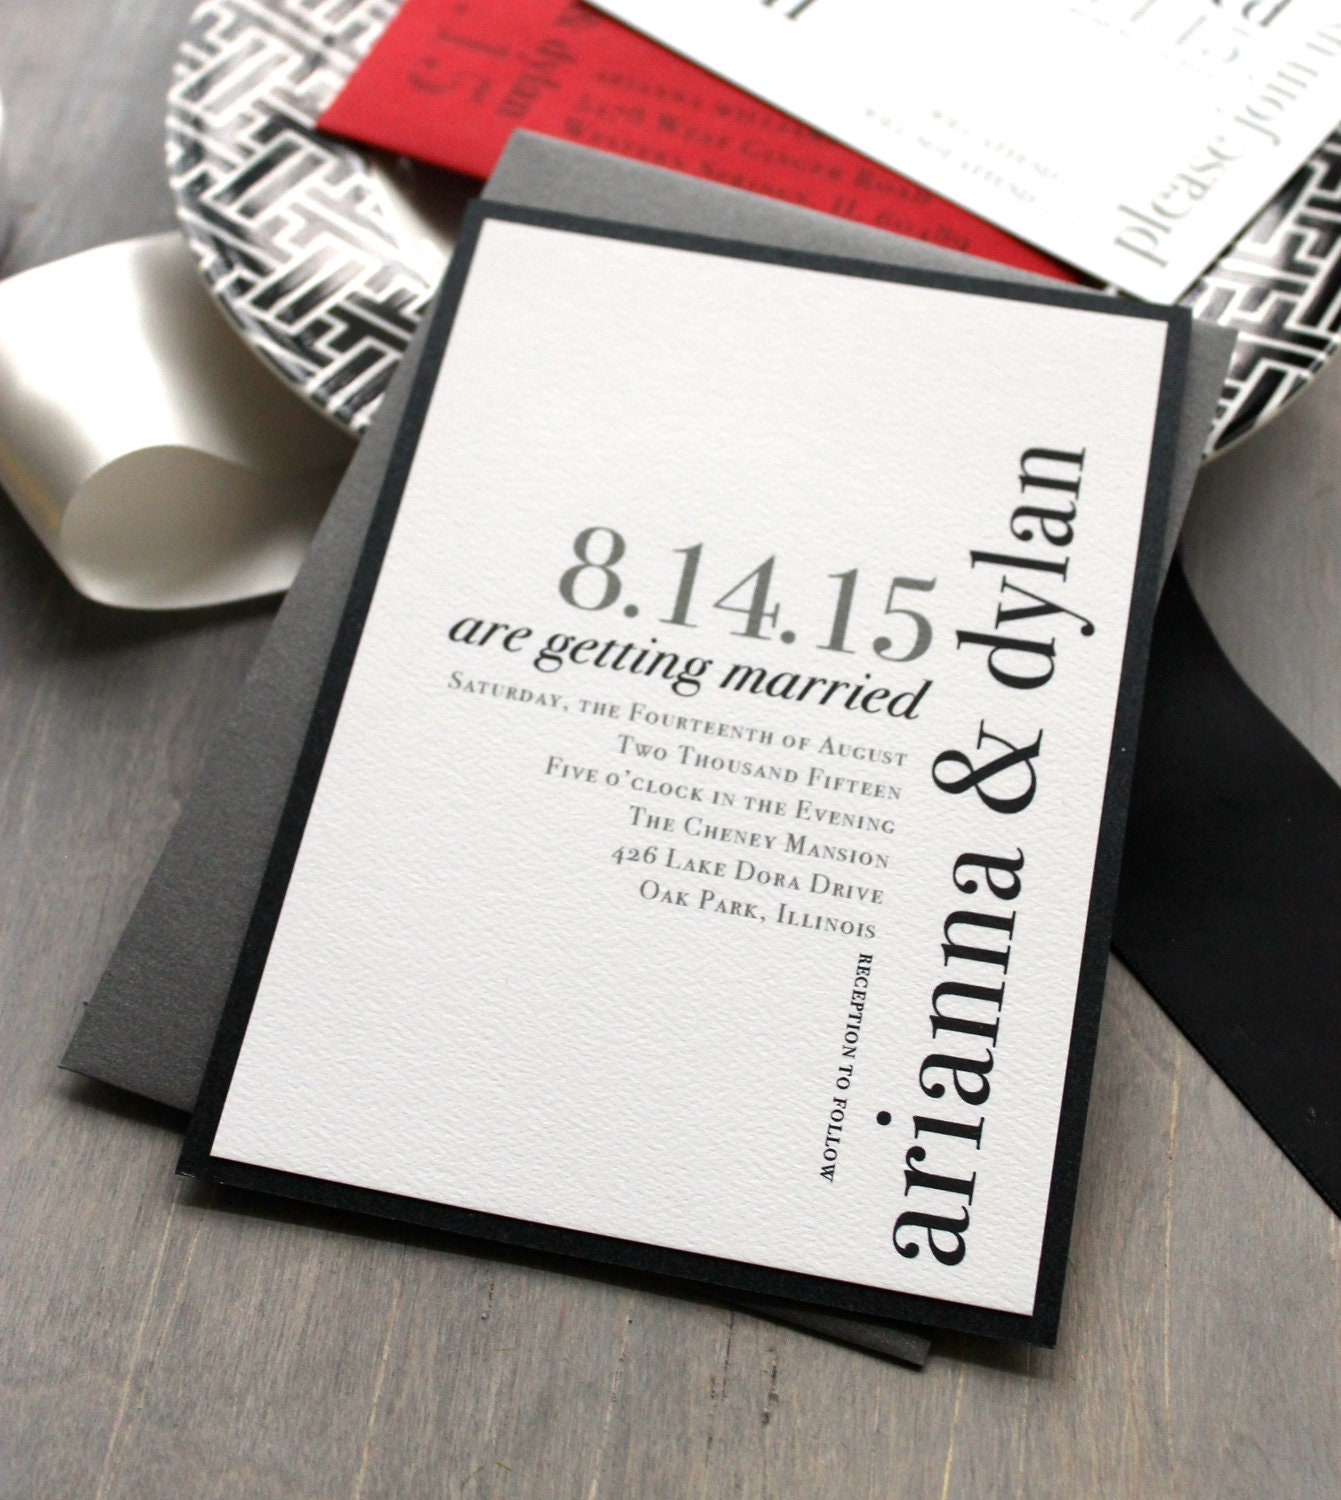 Modern Wedding Invite Wording: Modern Wedding Invitations Wedding Invitation Urban Chic